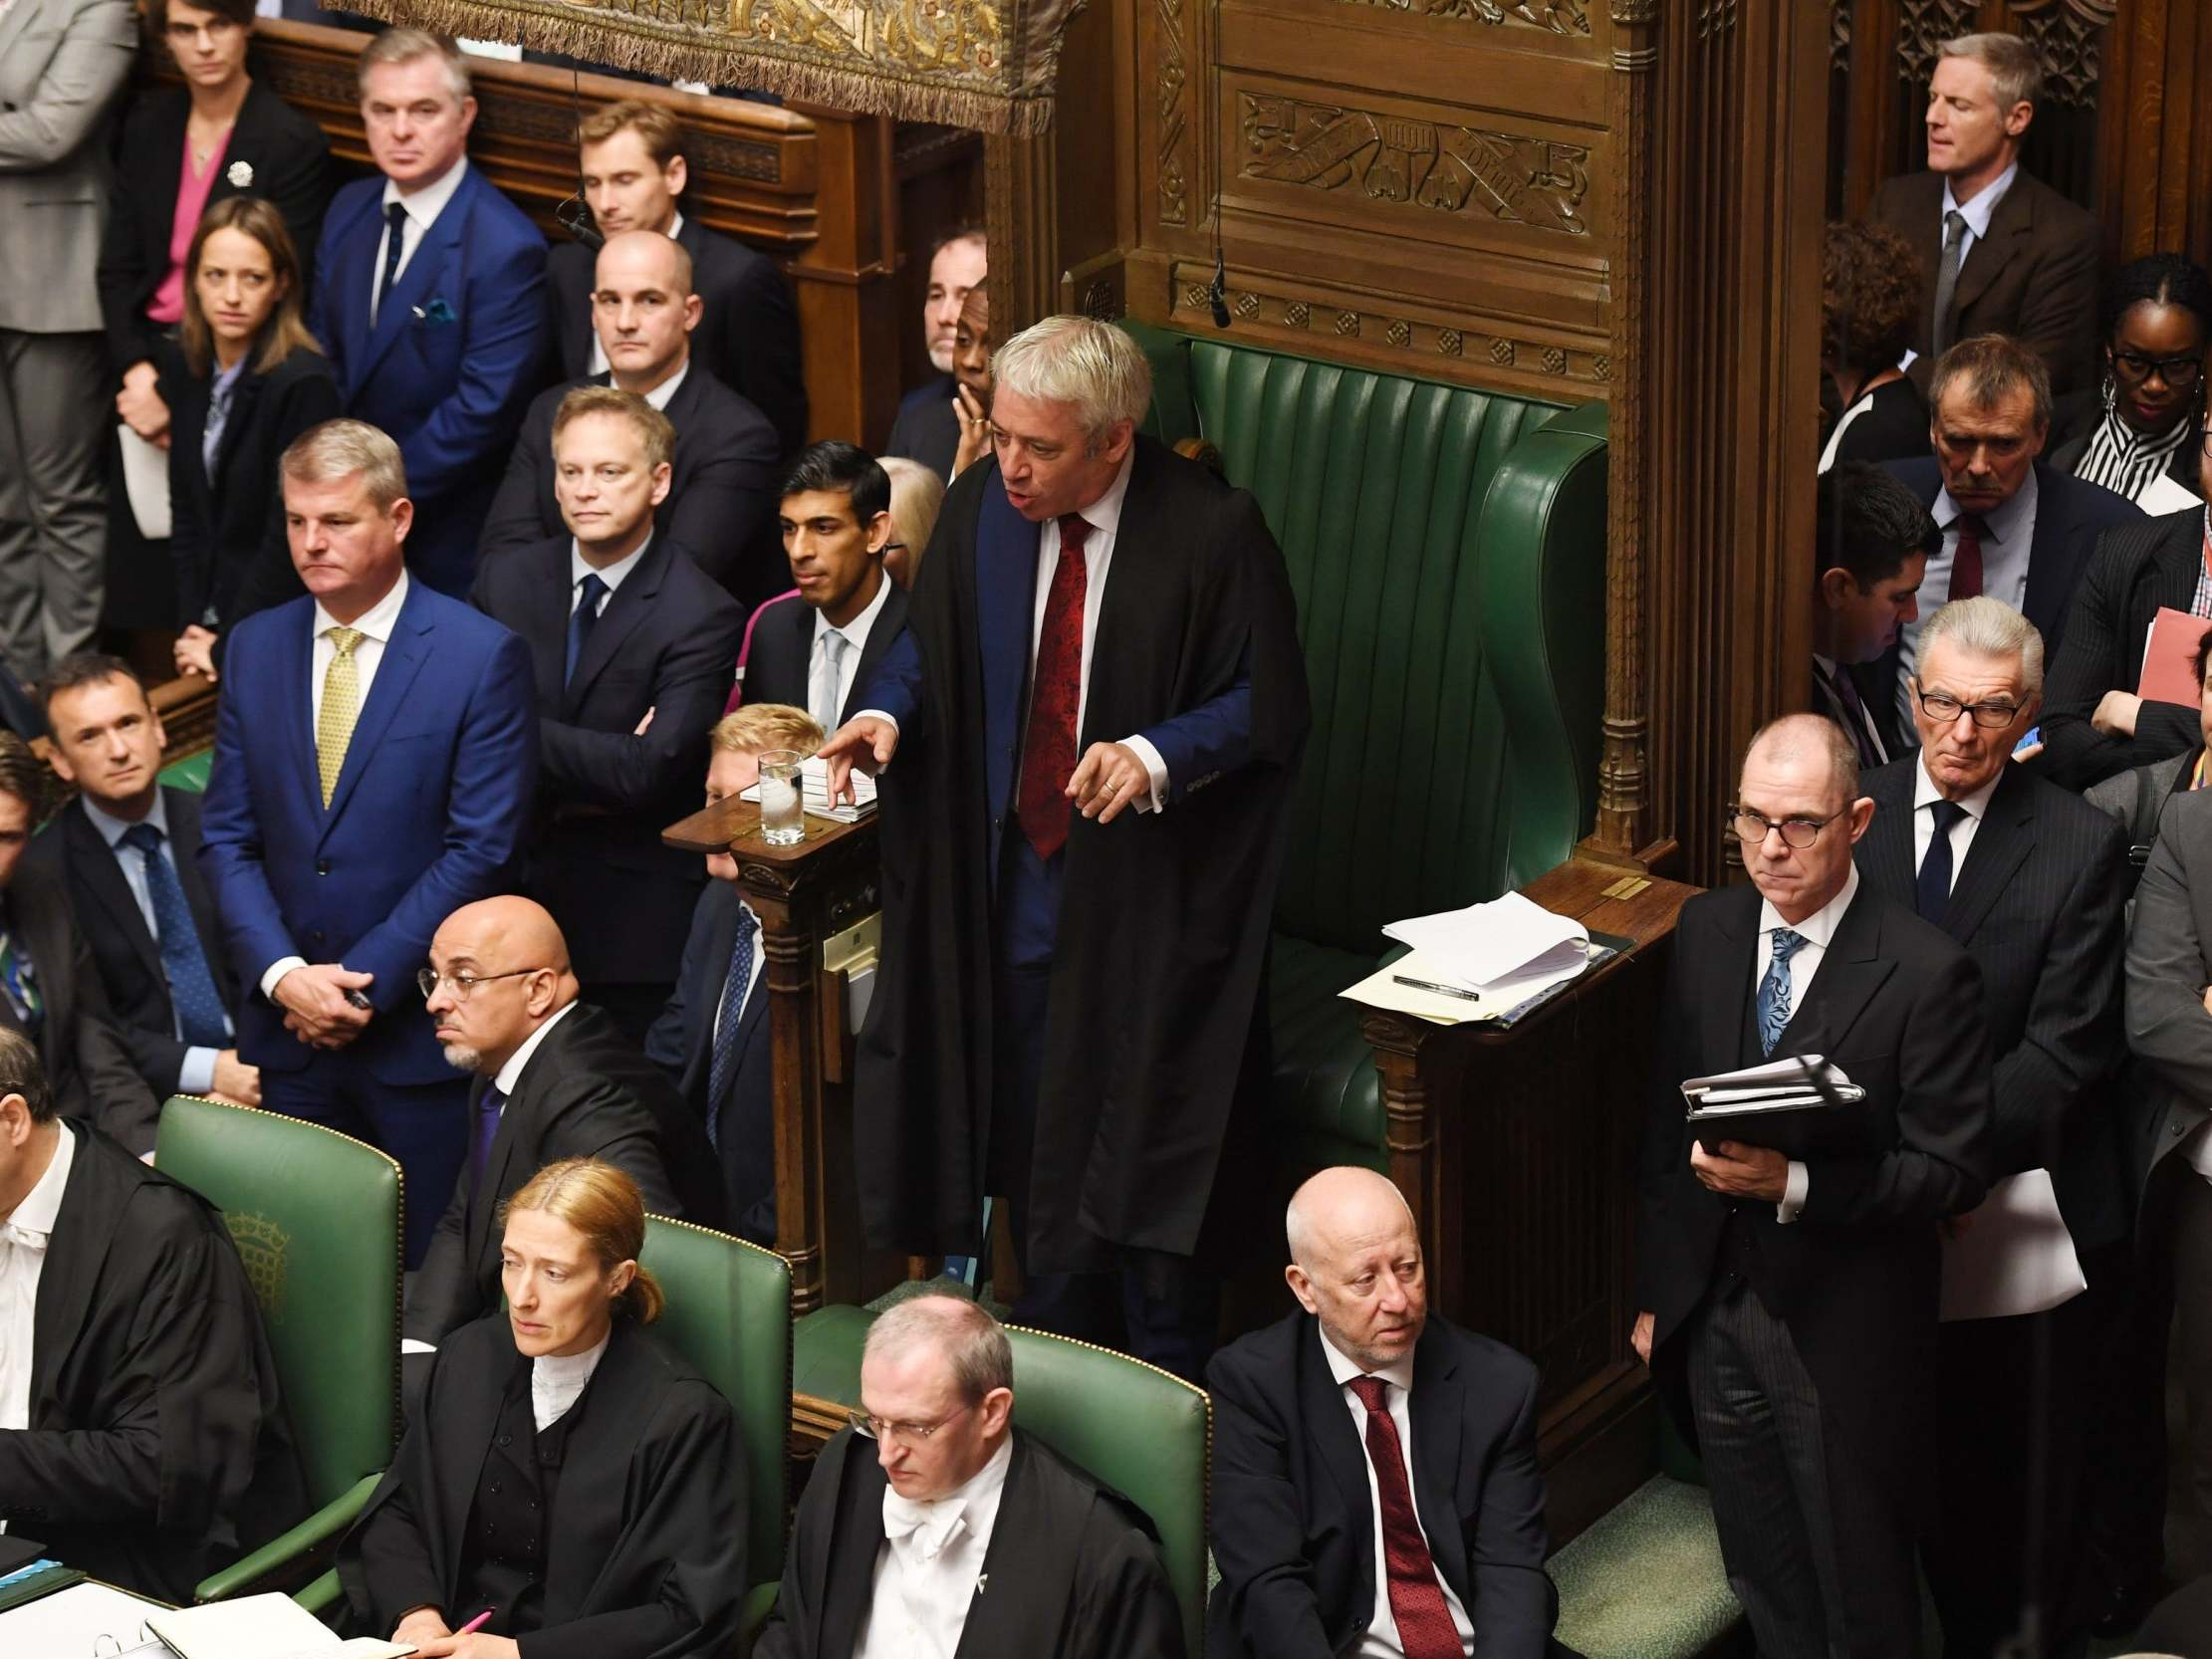 Brexit: Speaker John Bercow 'is ready to sign letter' asking for extension if asked by courts or parliament